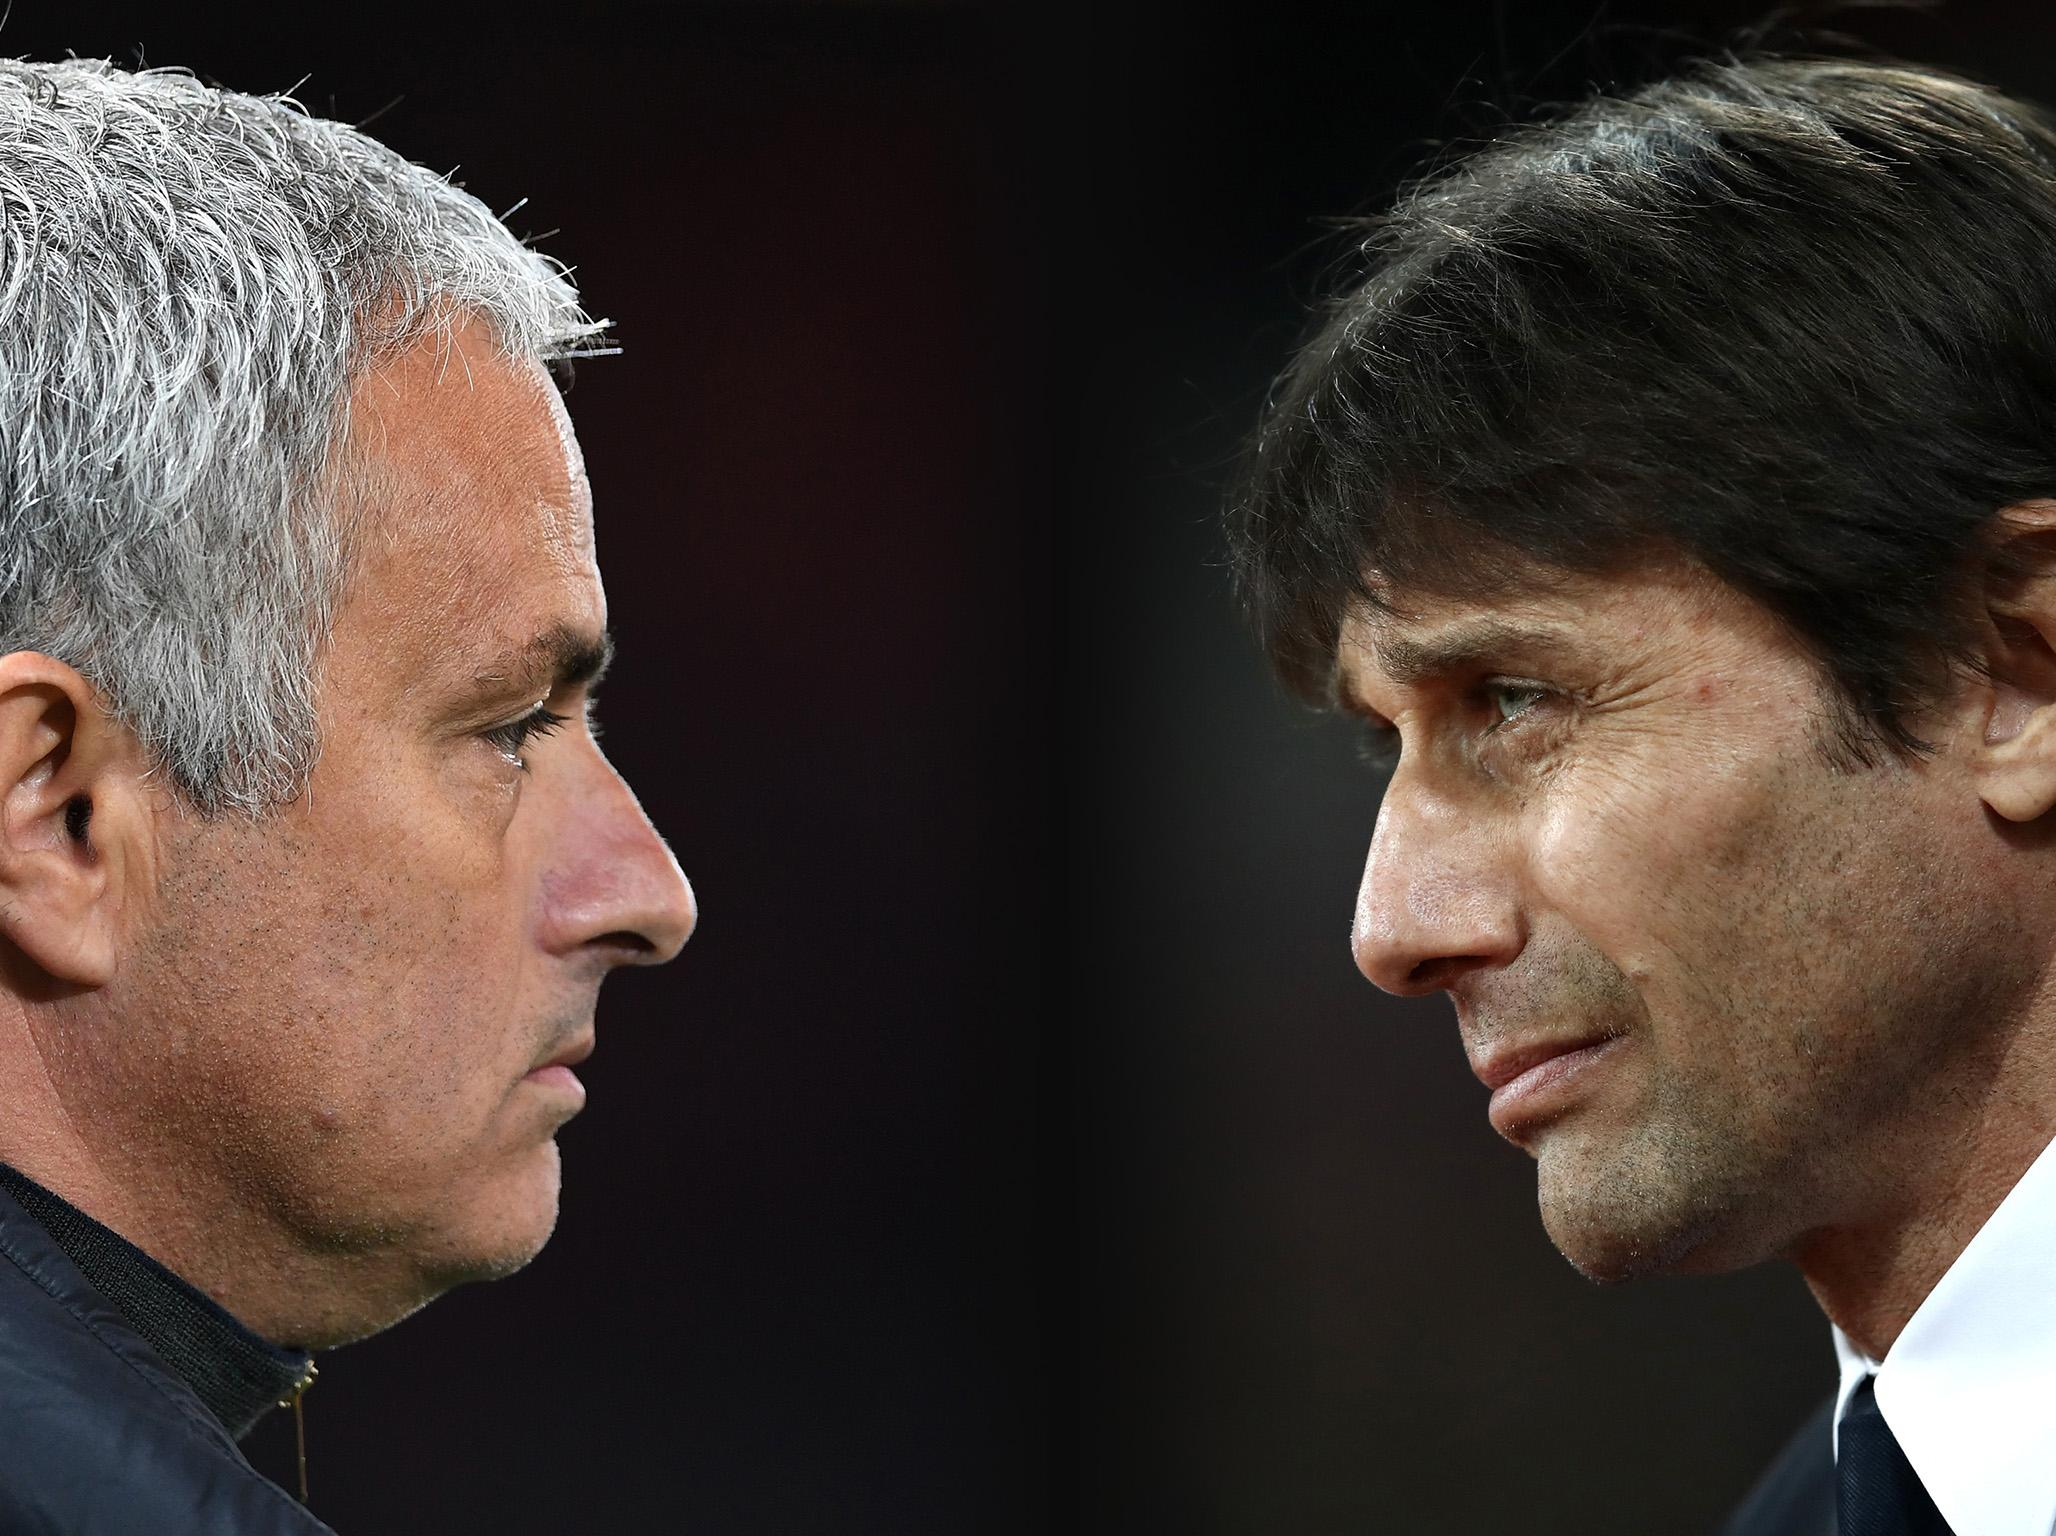 Manchester United vs Chelsea – Premier League LIVE! Line-ups, teams news and buildup to kick-off